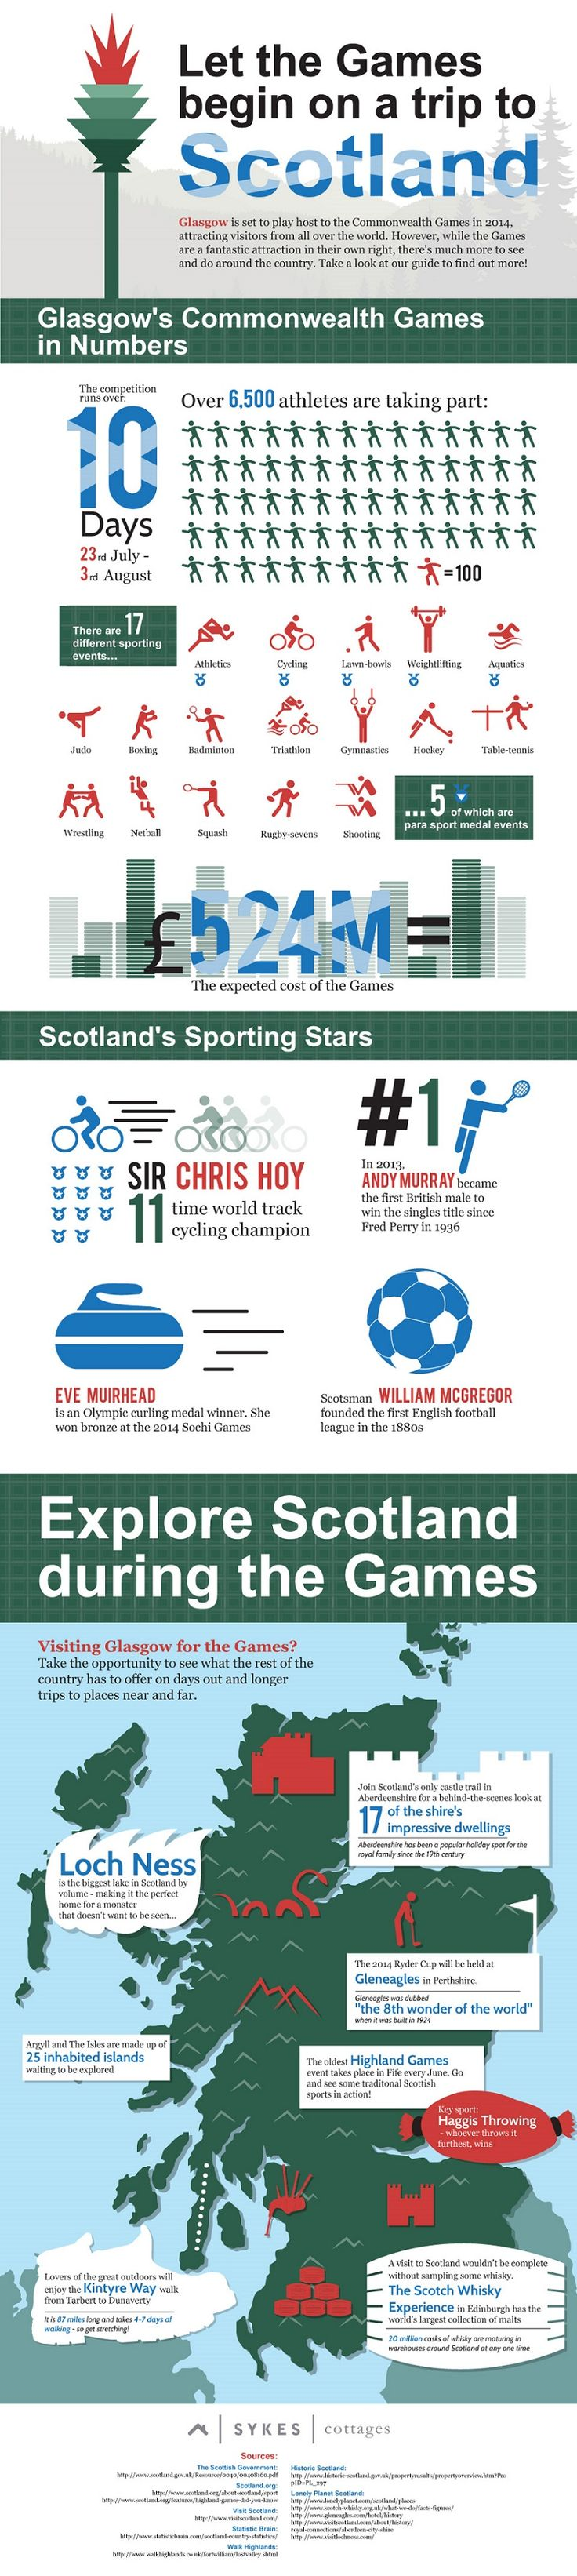 See Glasgow's Commonwealth Games in Numbers and the fantastic places in Scotland to explore!